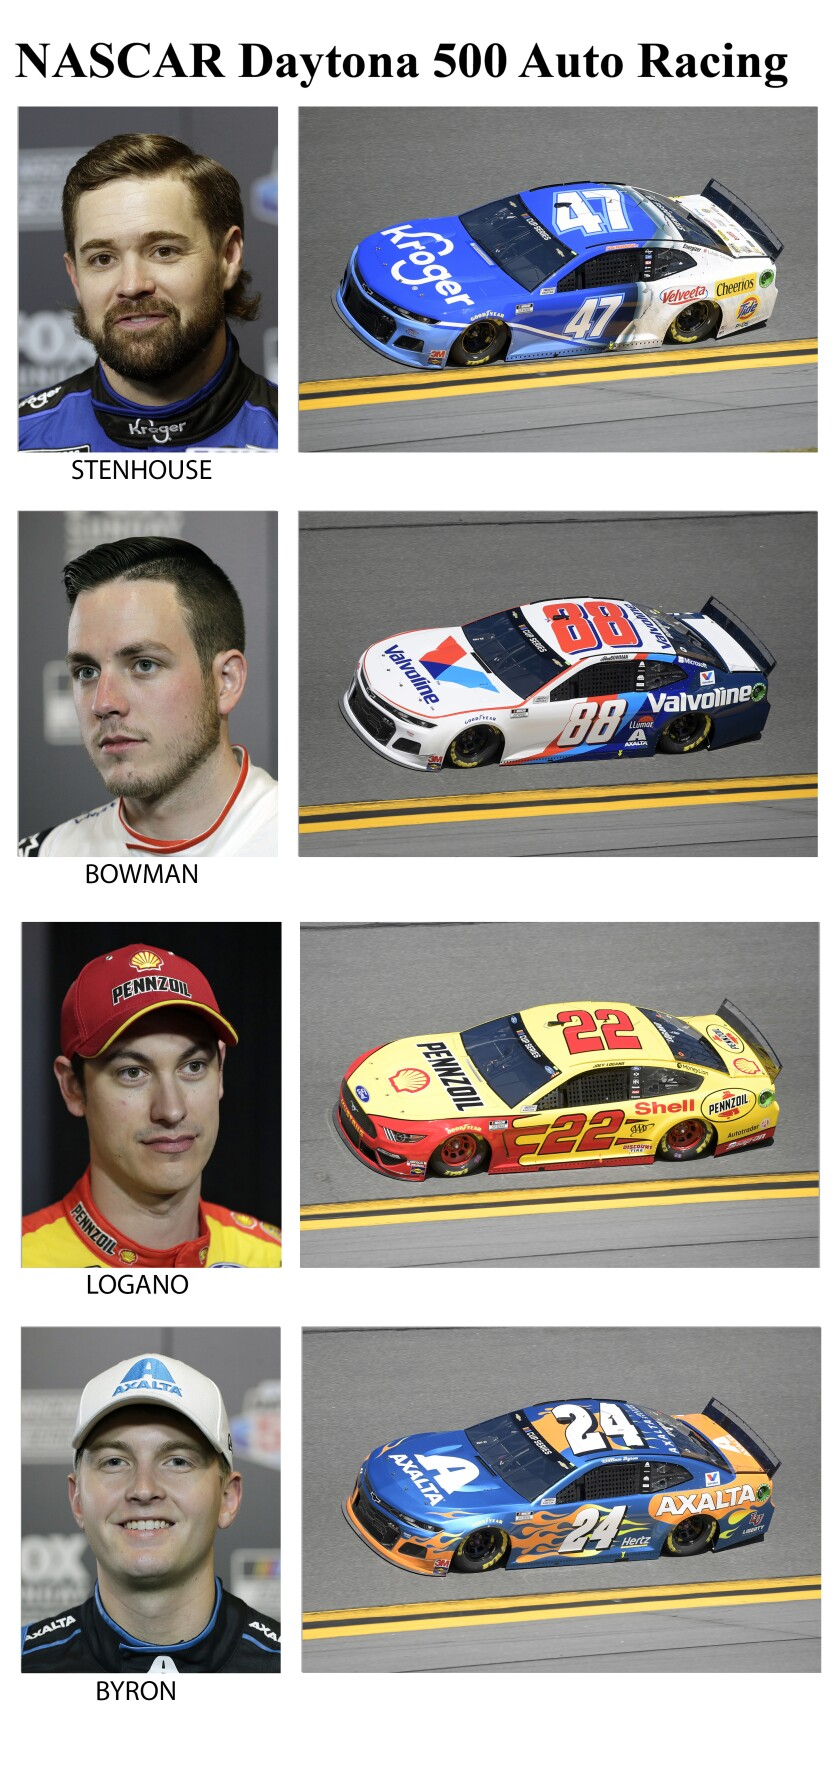 These photos taken in February 2020 show drivers in the starting lineup for Sunday's NASCAR Daytona 500 auto race in Daytona Beach, Fla. From top are Ricky Stenhouse Jr., starting in the first position; Alex Bowman, second position; Joey Logano, third position and William Byron, fourth position. (AP Photo)